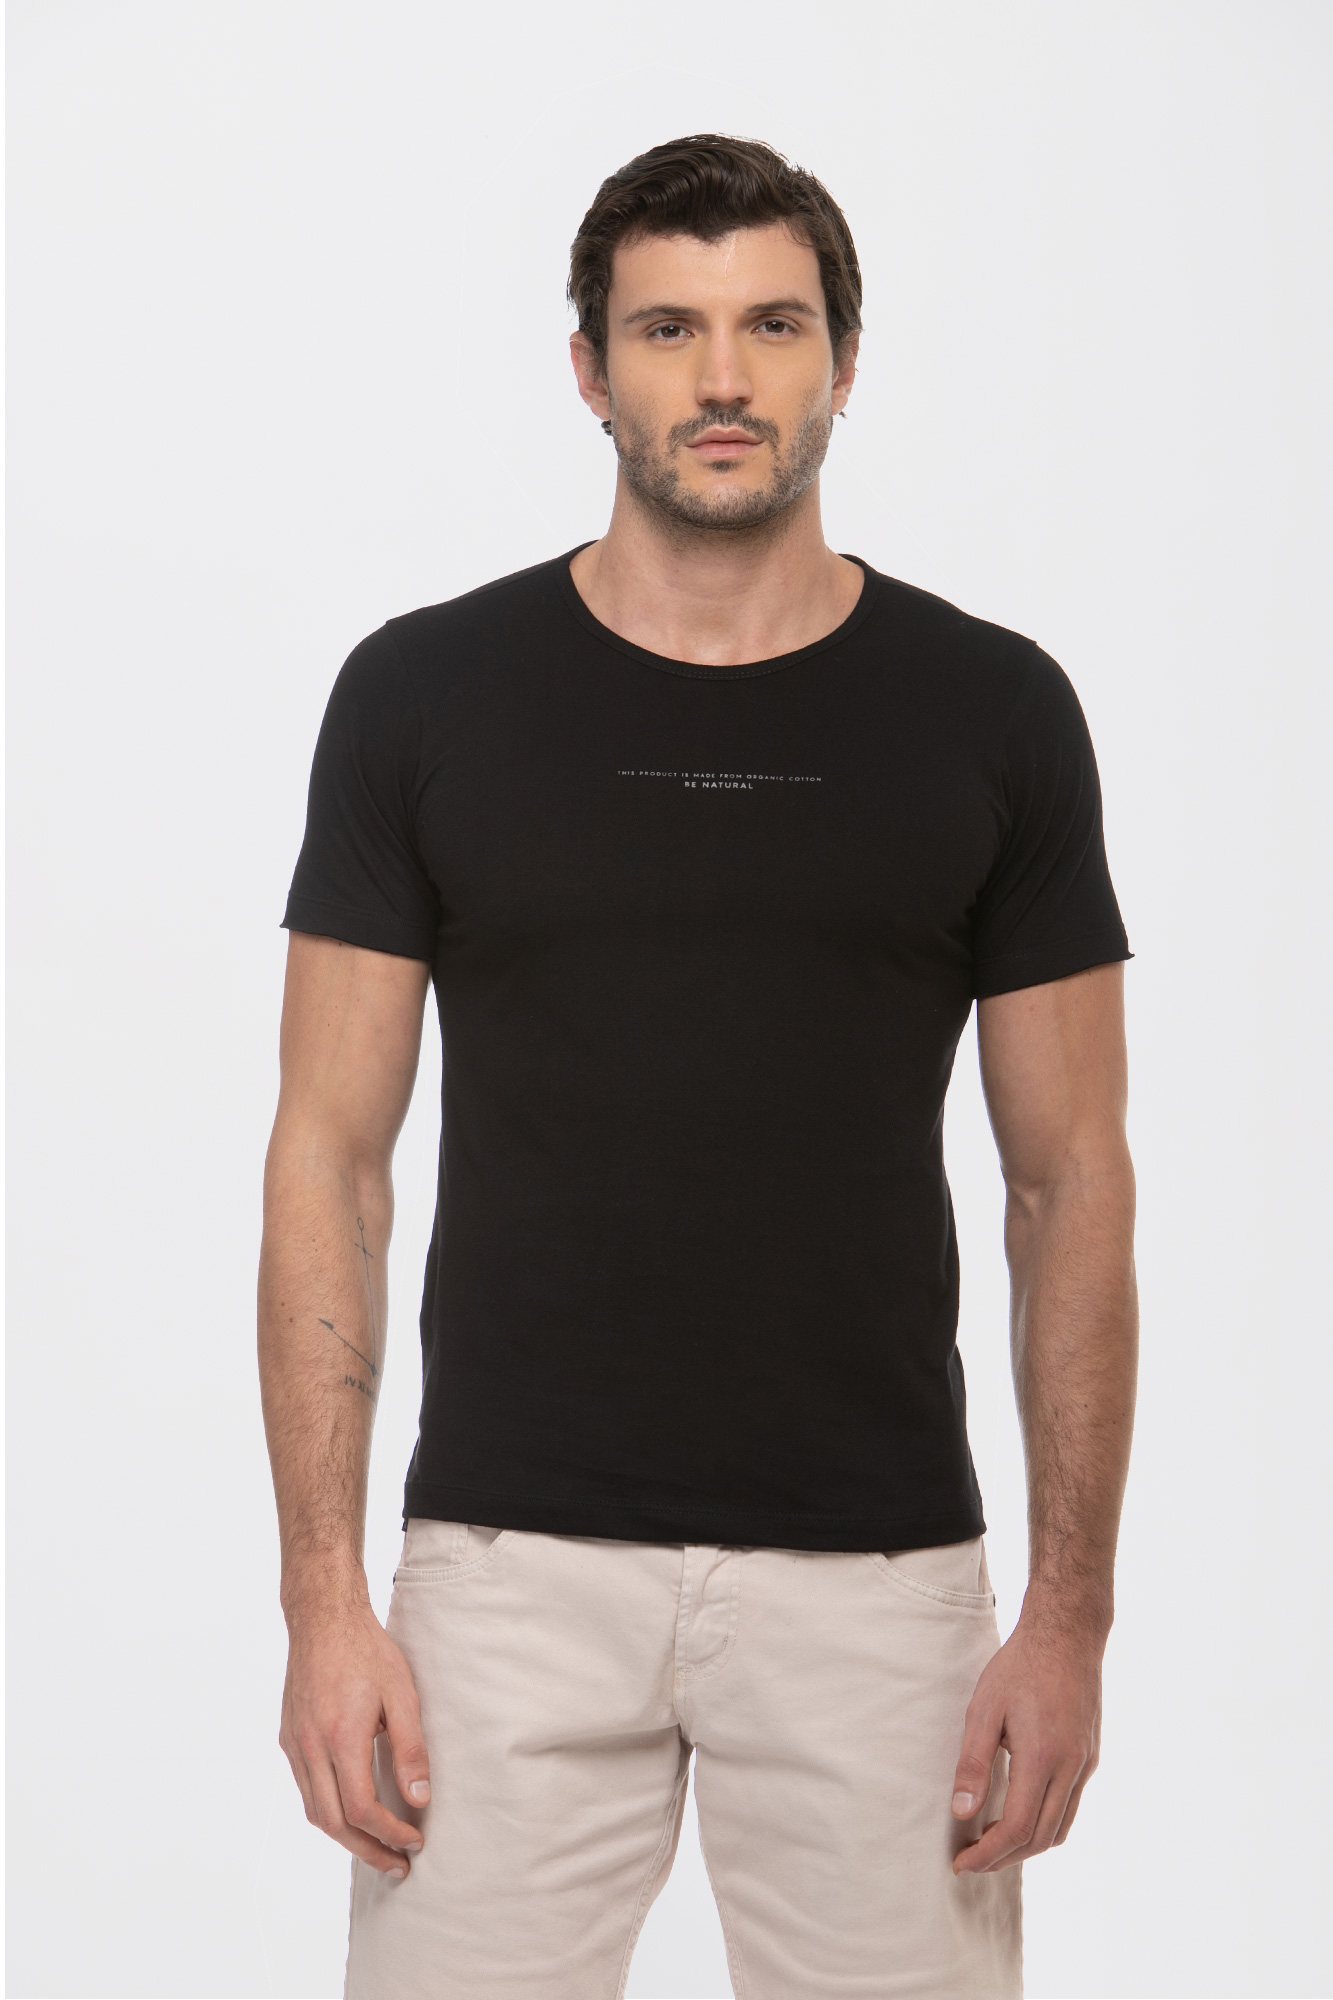 Camiseta Organic Be Natural Preta